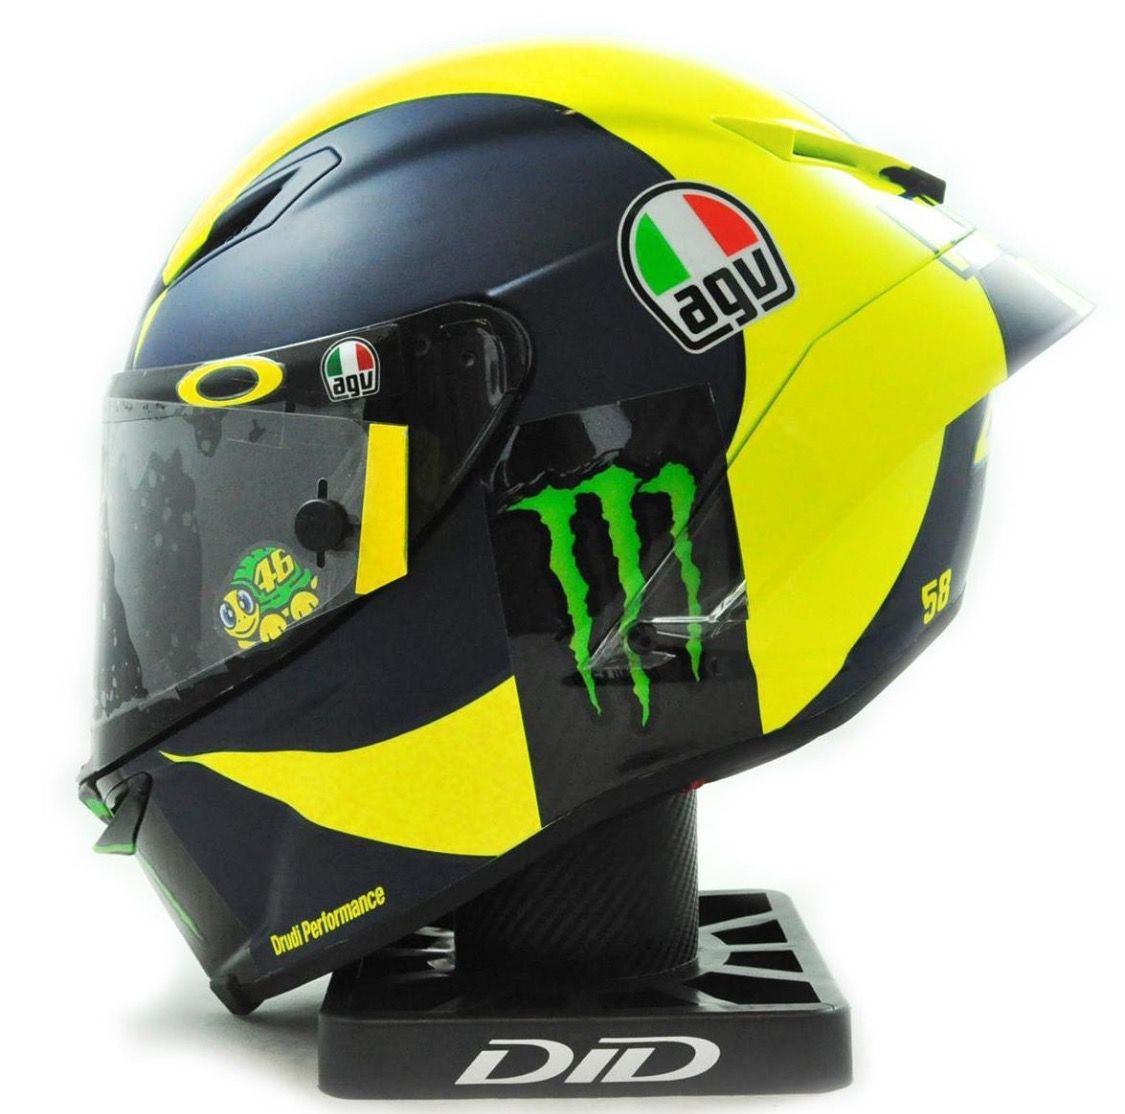 valentino rossi 2018 campaign agv helmet helmets. Black Bedroom Furniture Sets. Home Design Ideas